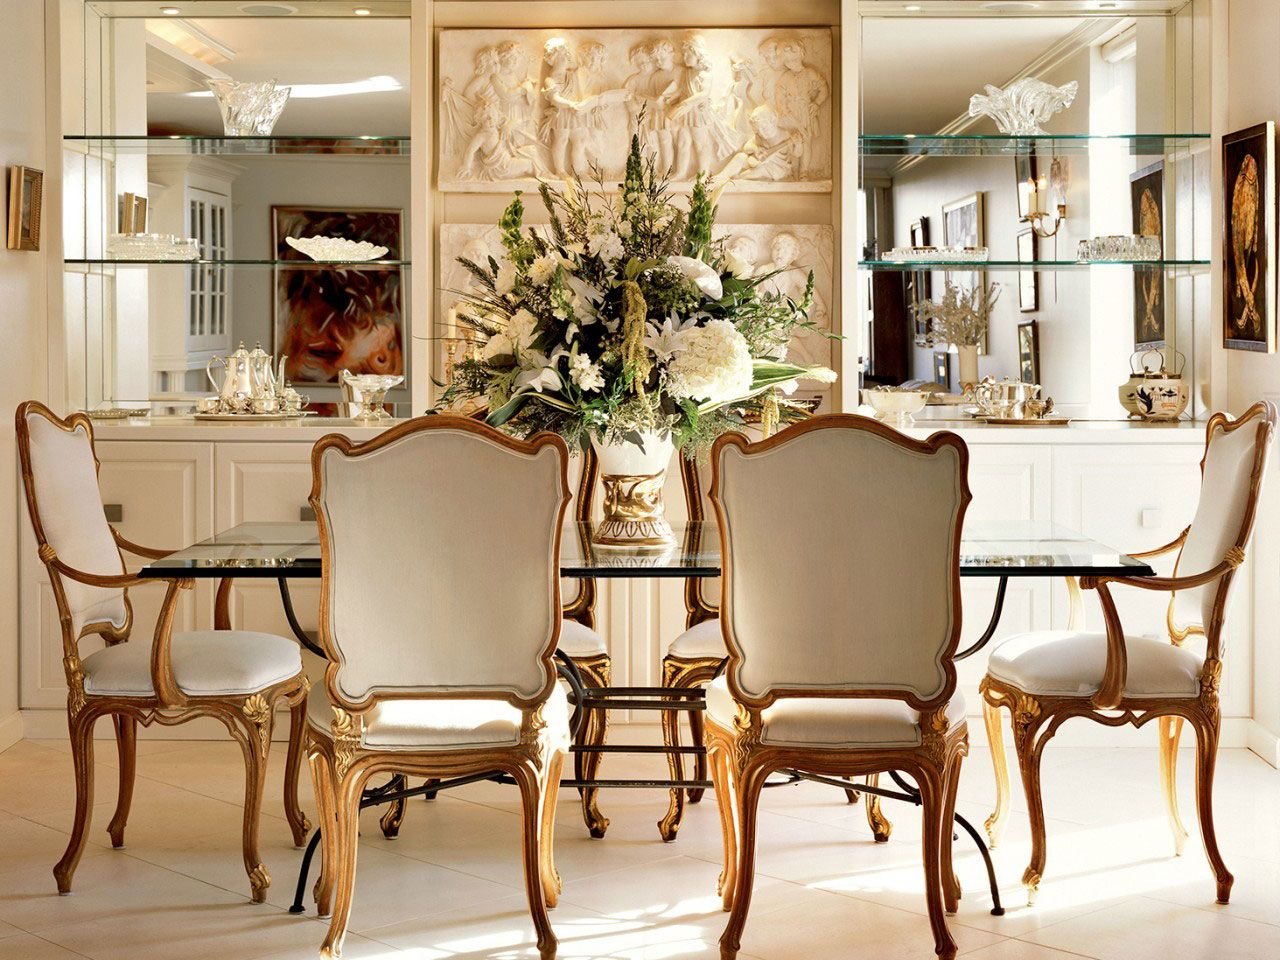 Stunning luxurious dining room design with Louis XV style chairs